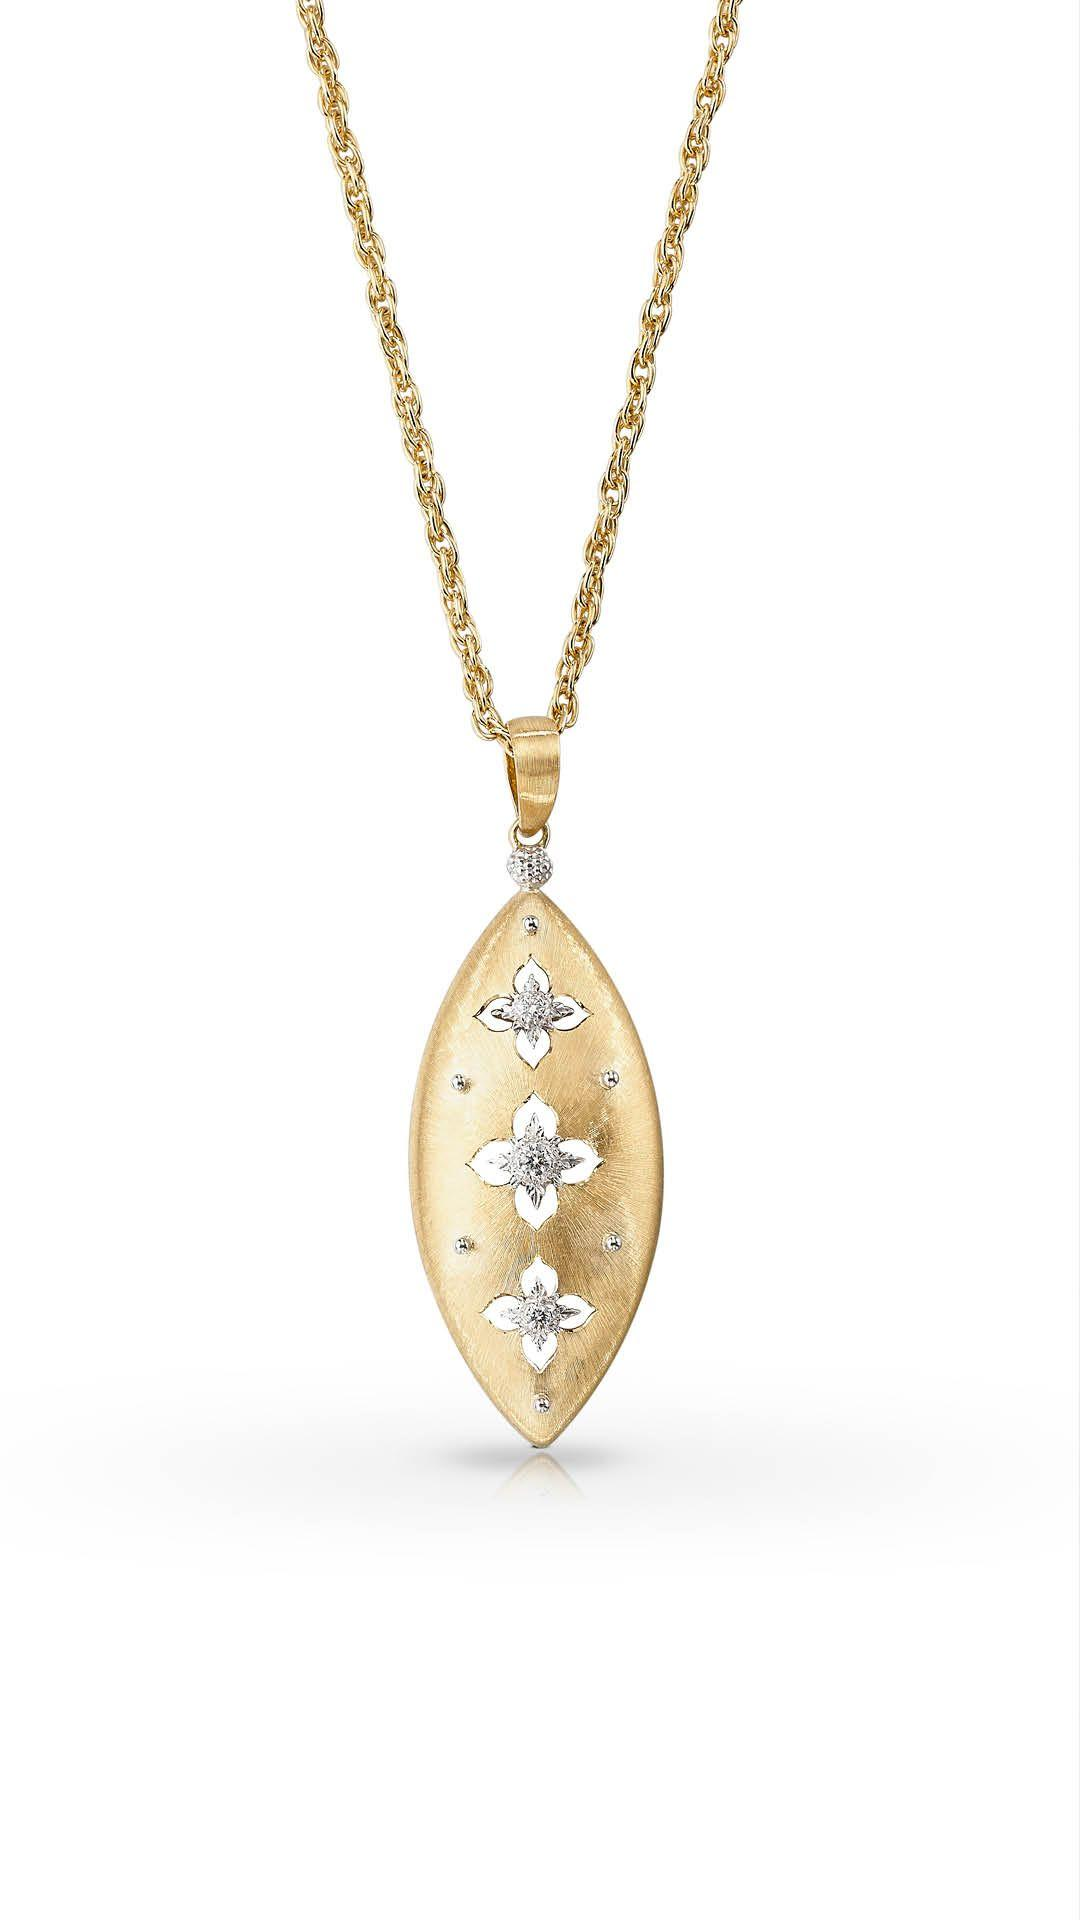 A gold and diamond necklace by Buccellati